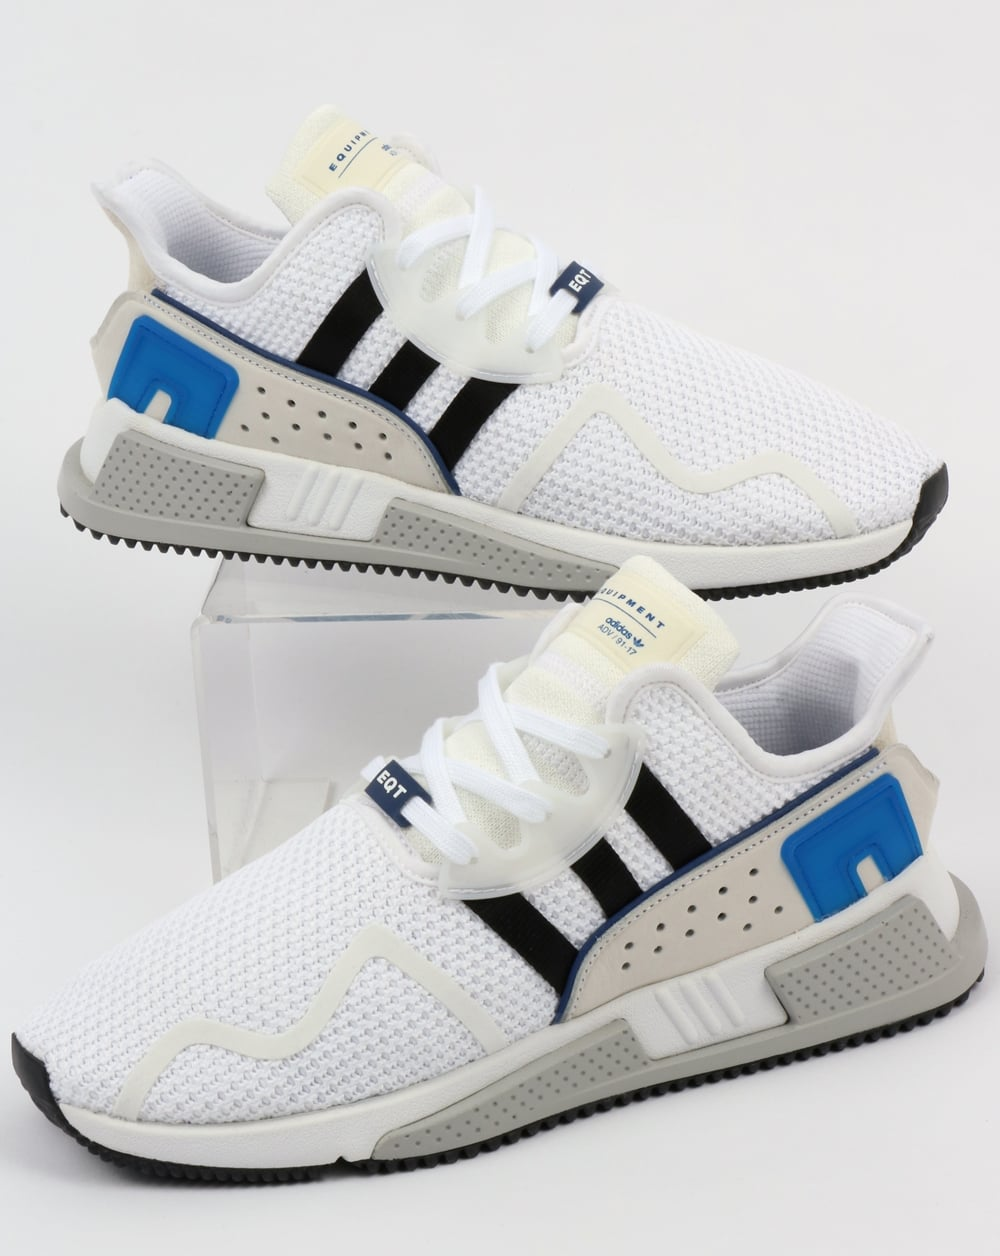 save off b2e3c 4809d Adidas EQT Cushion ADV Trainers White/Black/Royal